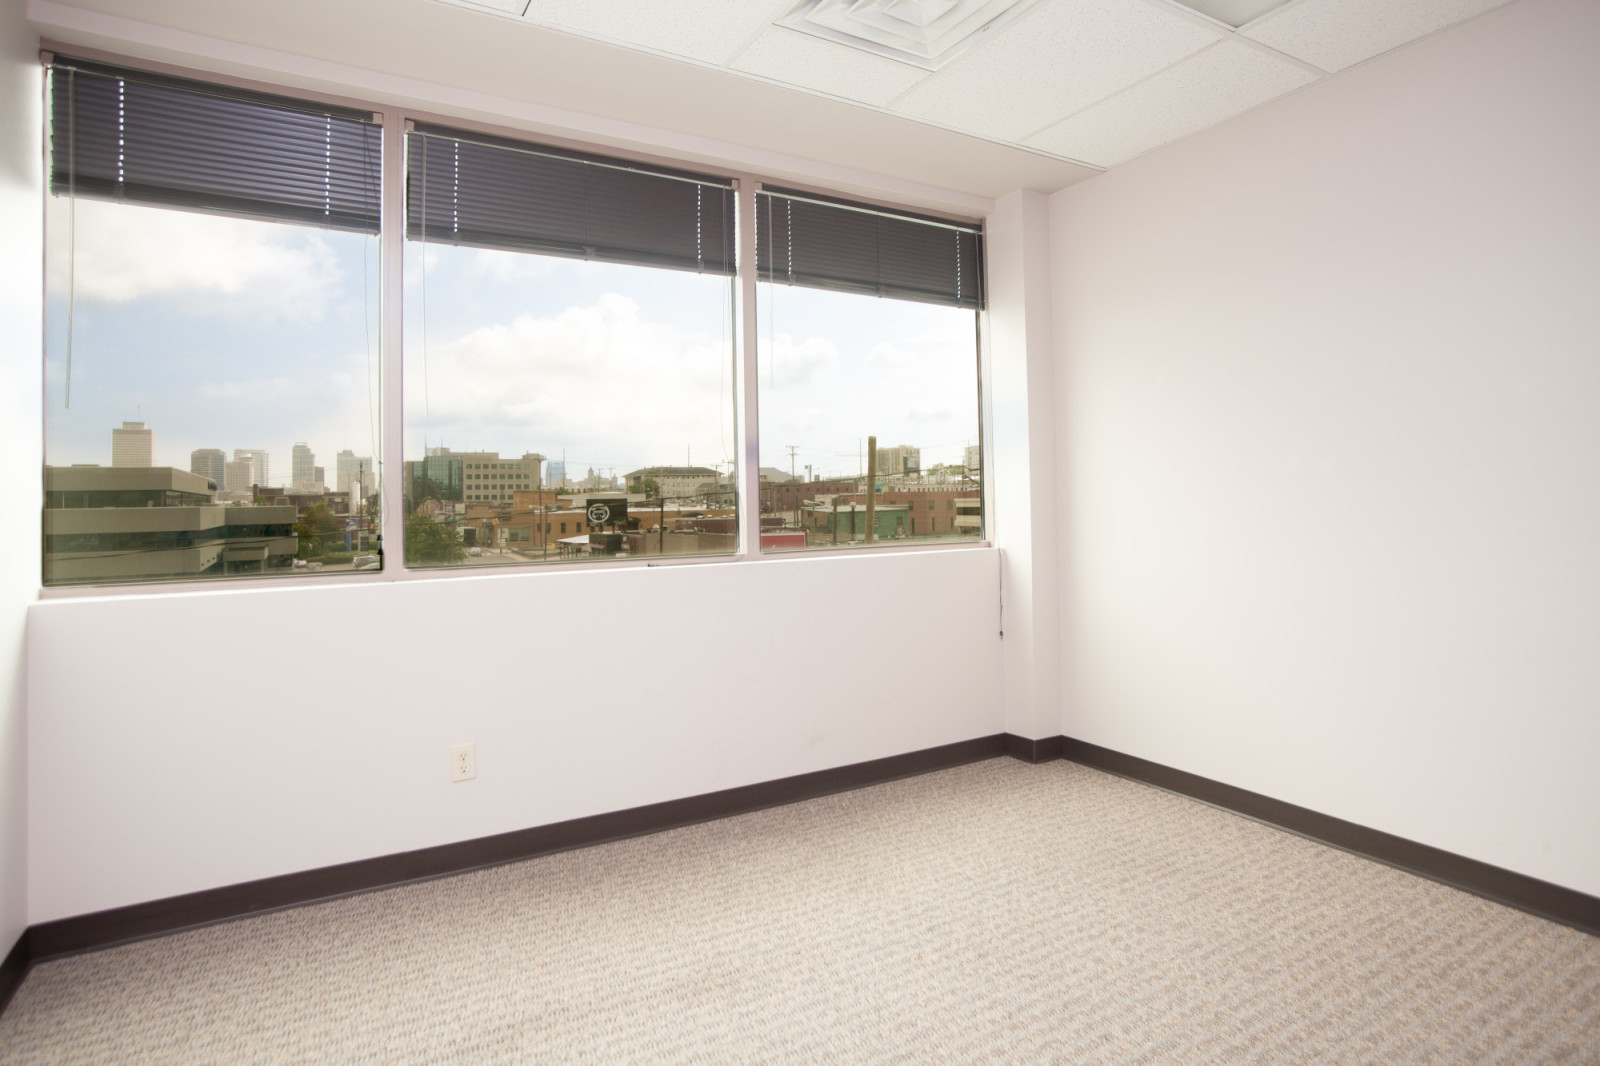 Why wait? Our office suites are move-in ready!